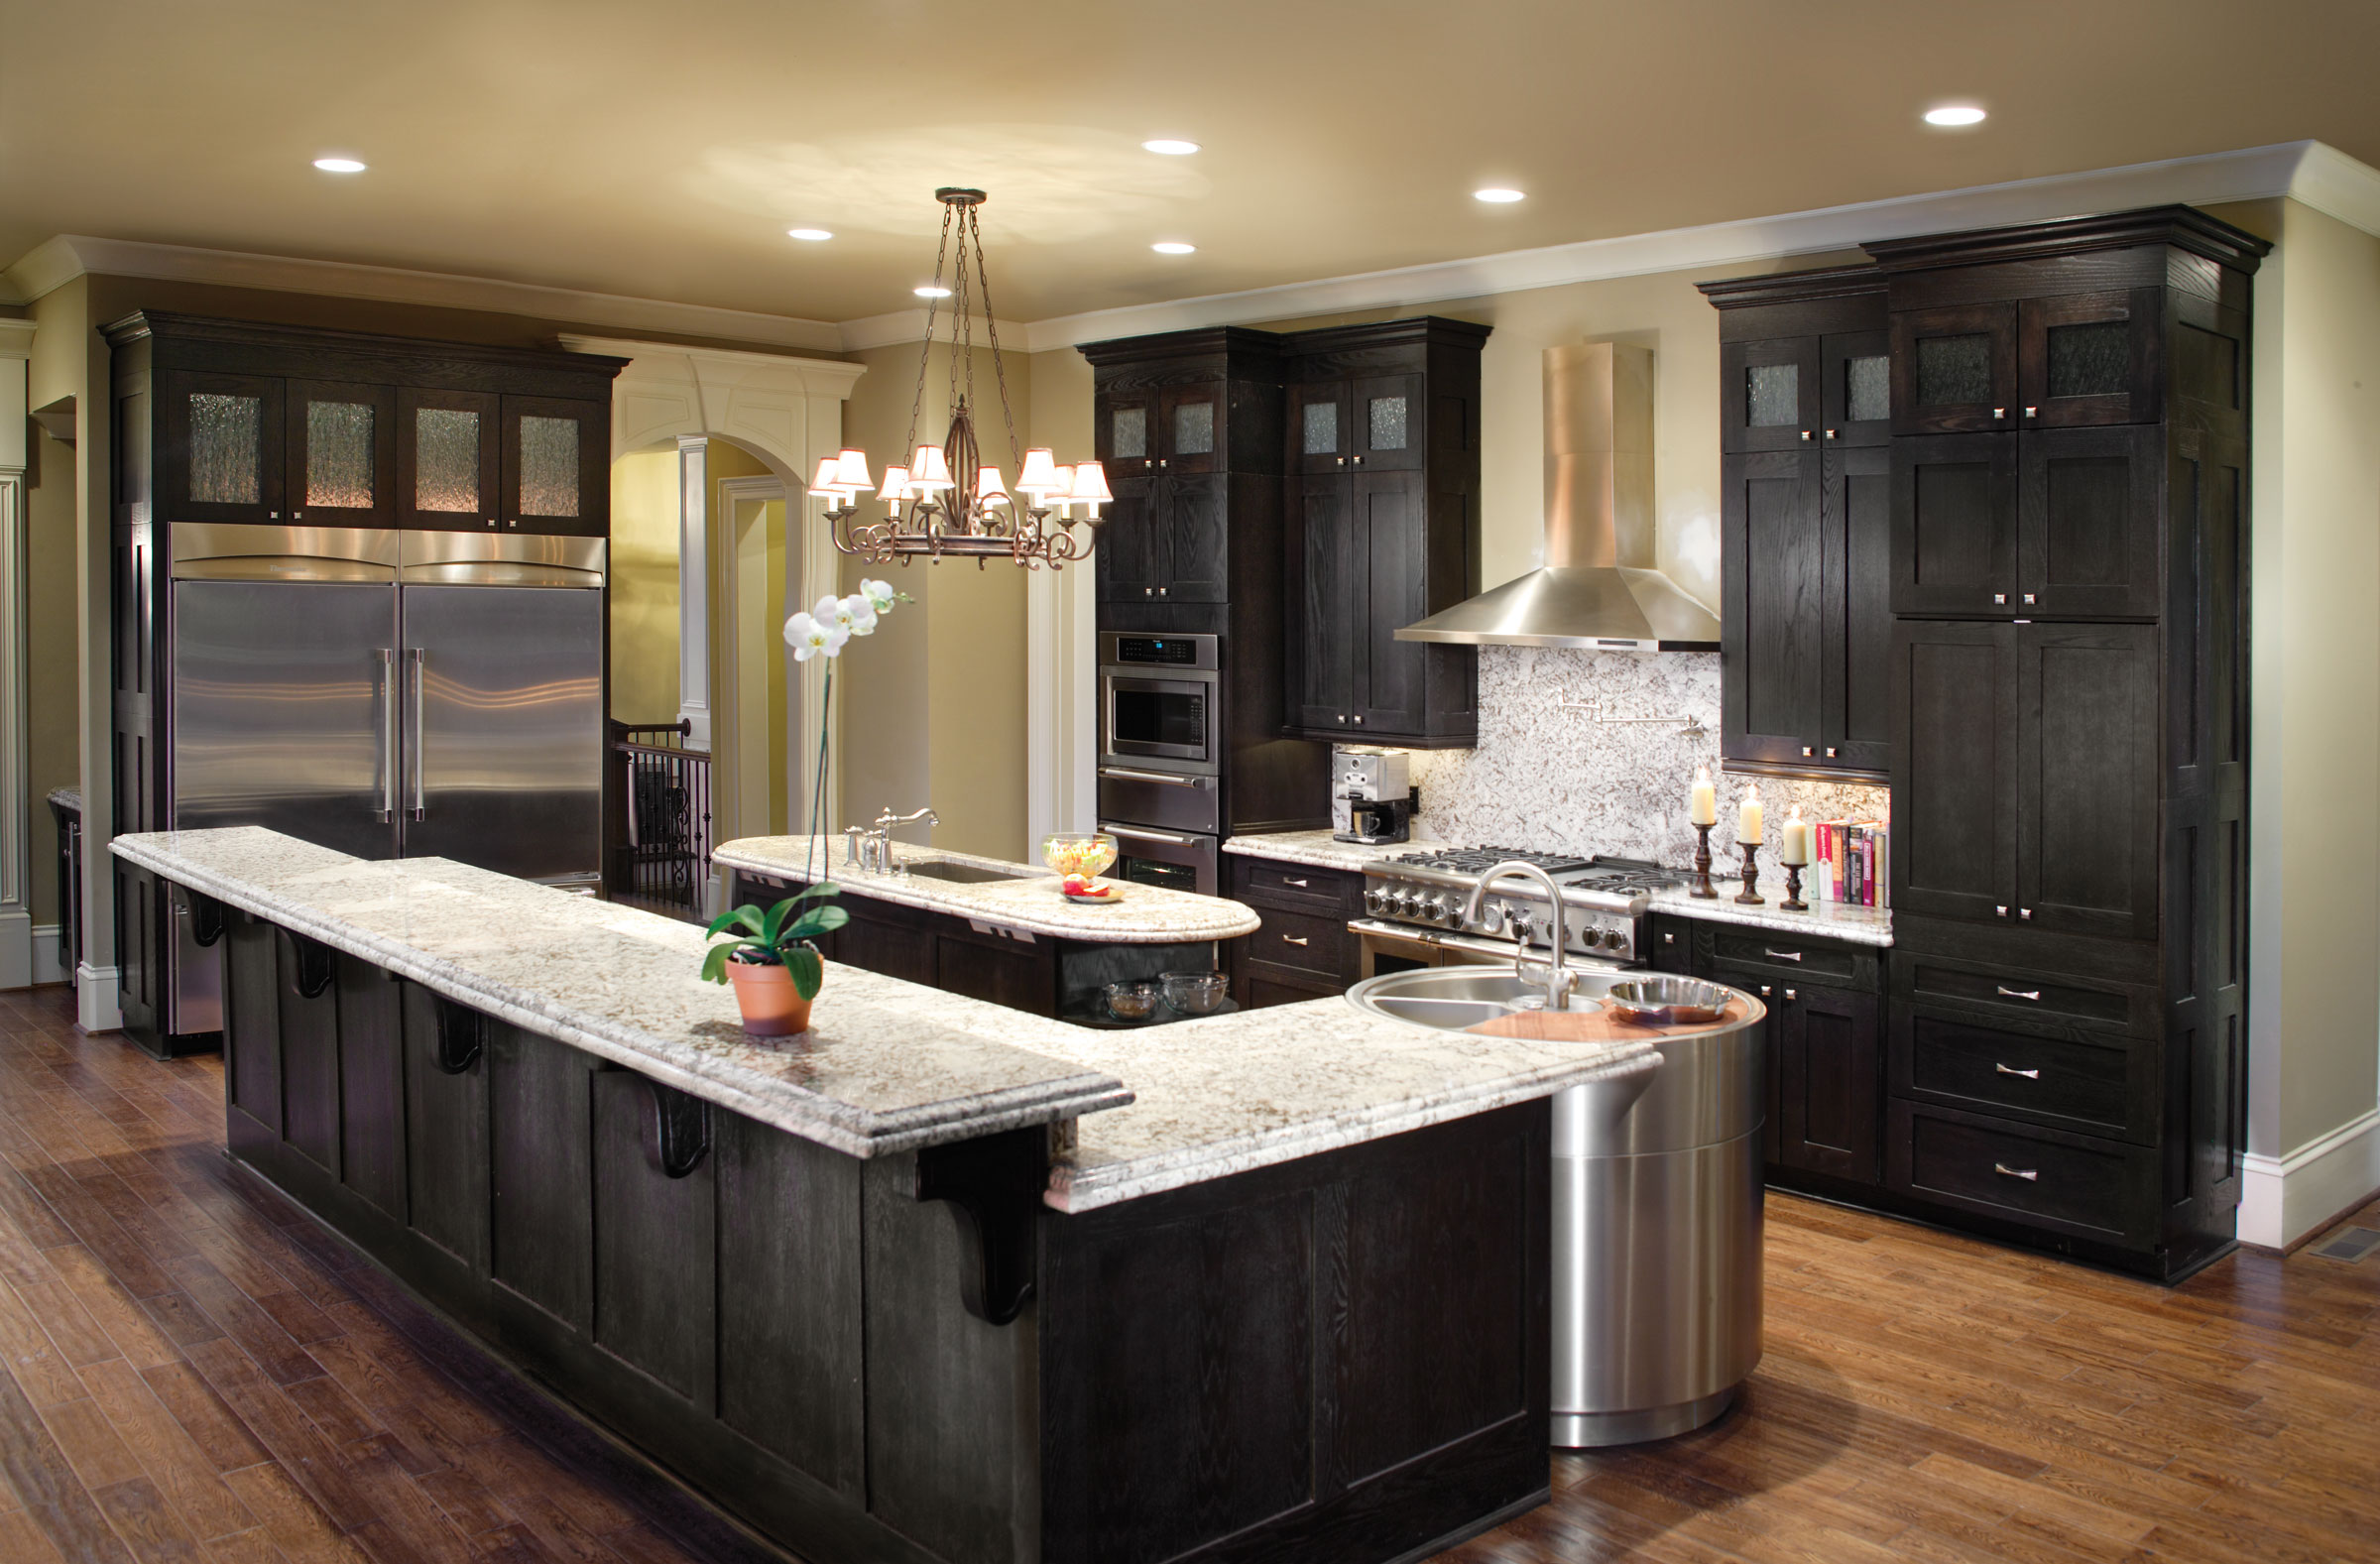 Custom bathroom kitchen cabinets phoenix cabinets by for Kitchen kitchen design